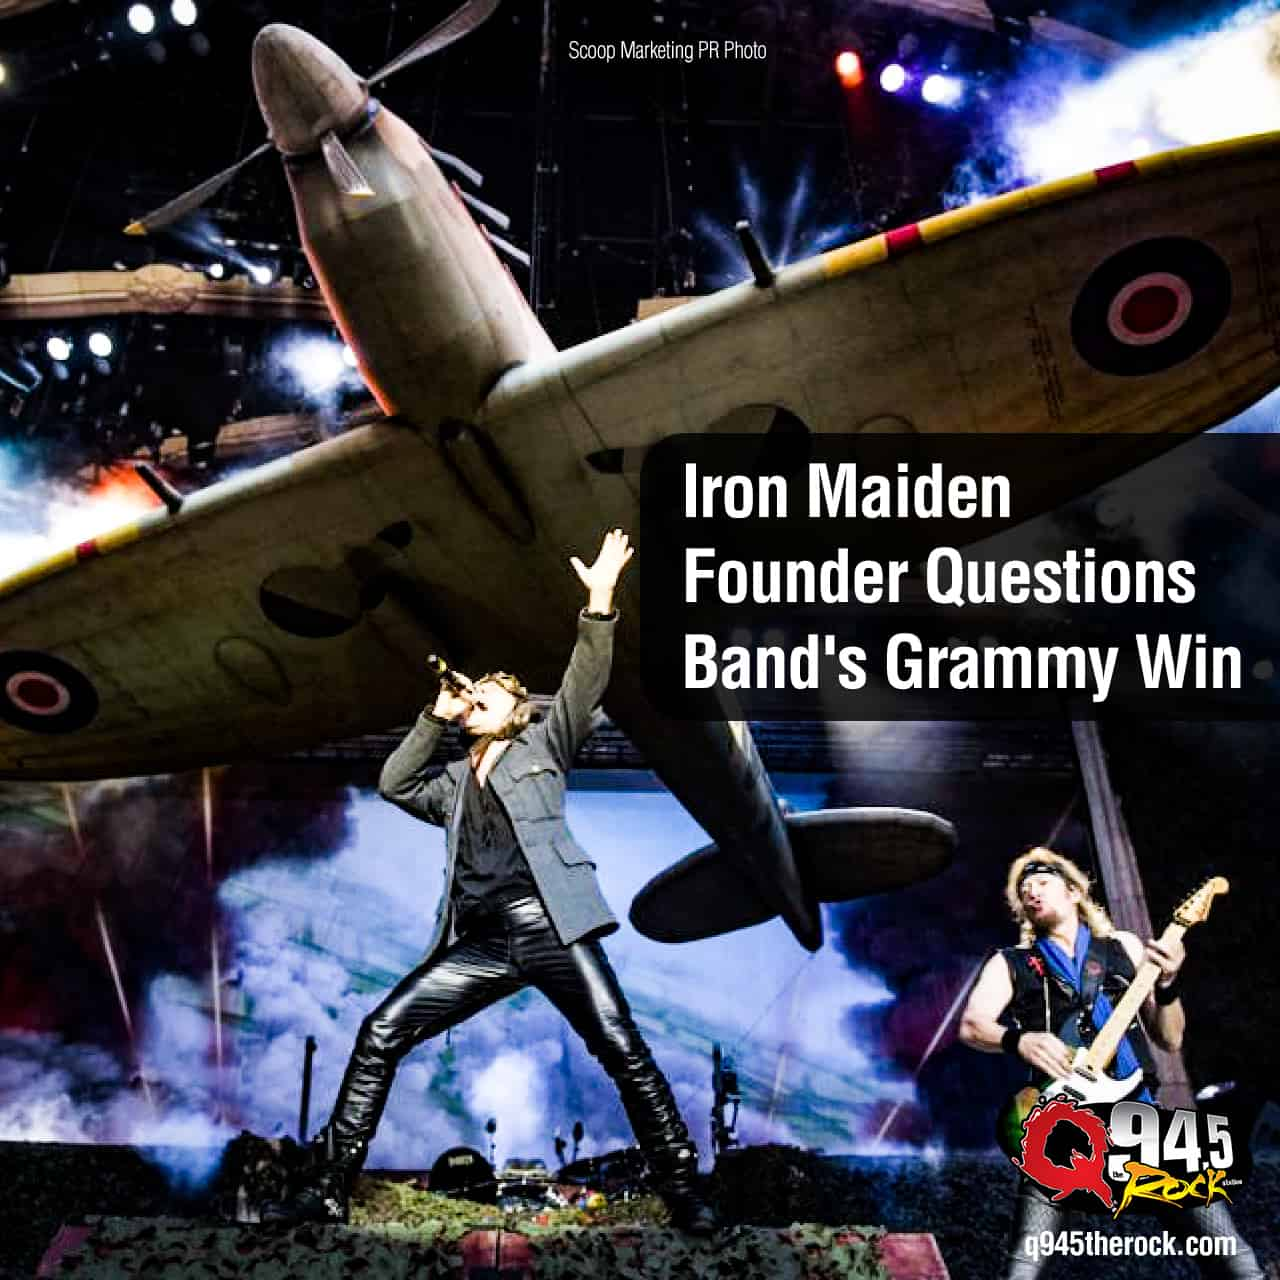 Iron Maiden Founder Questions Band's Grammy Win